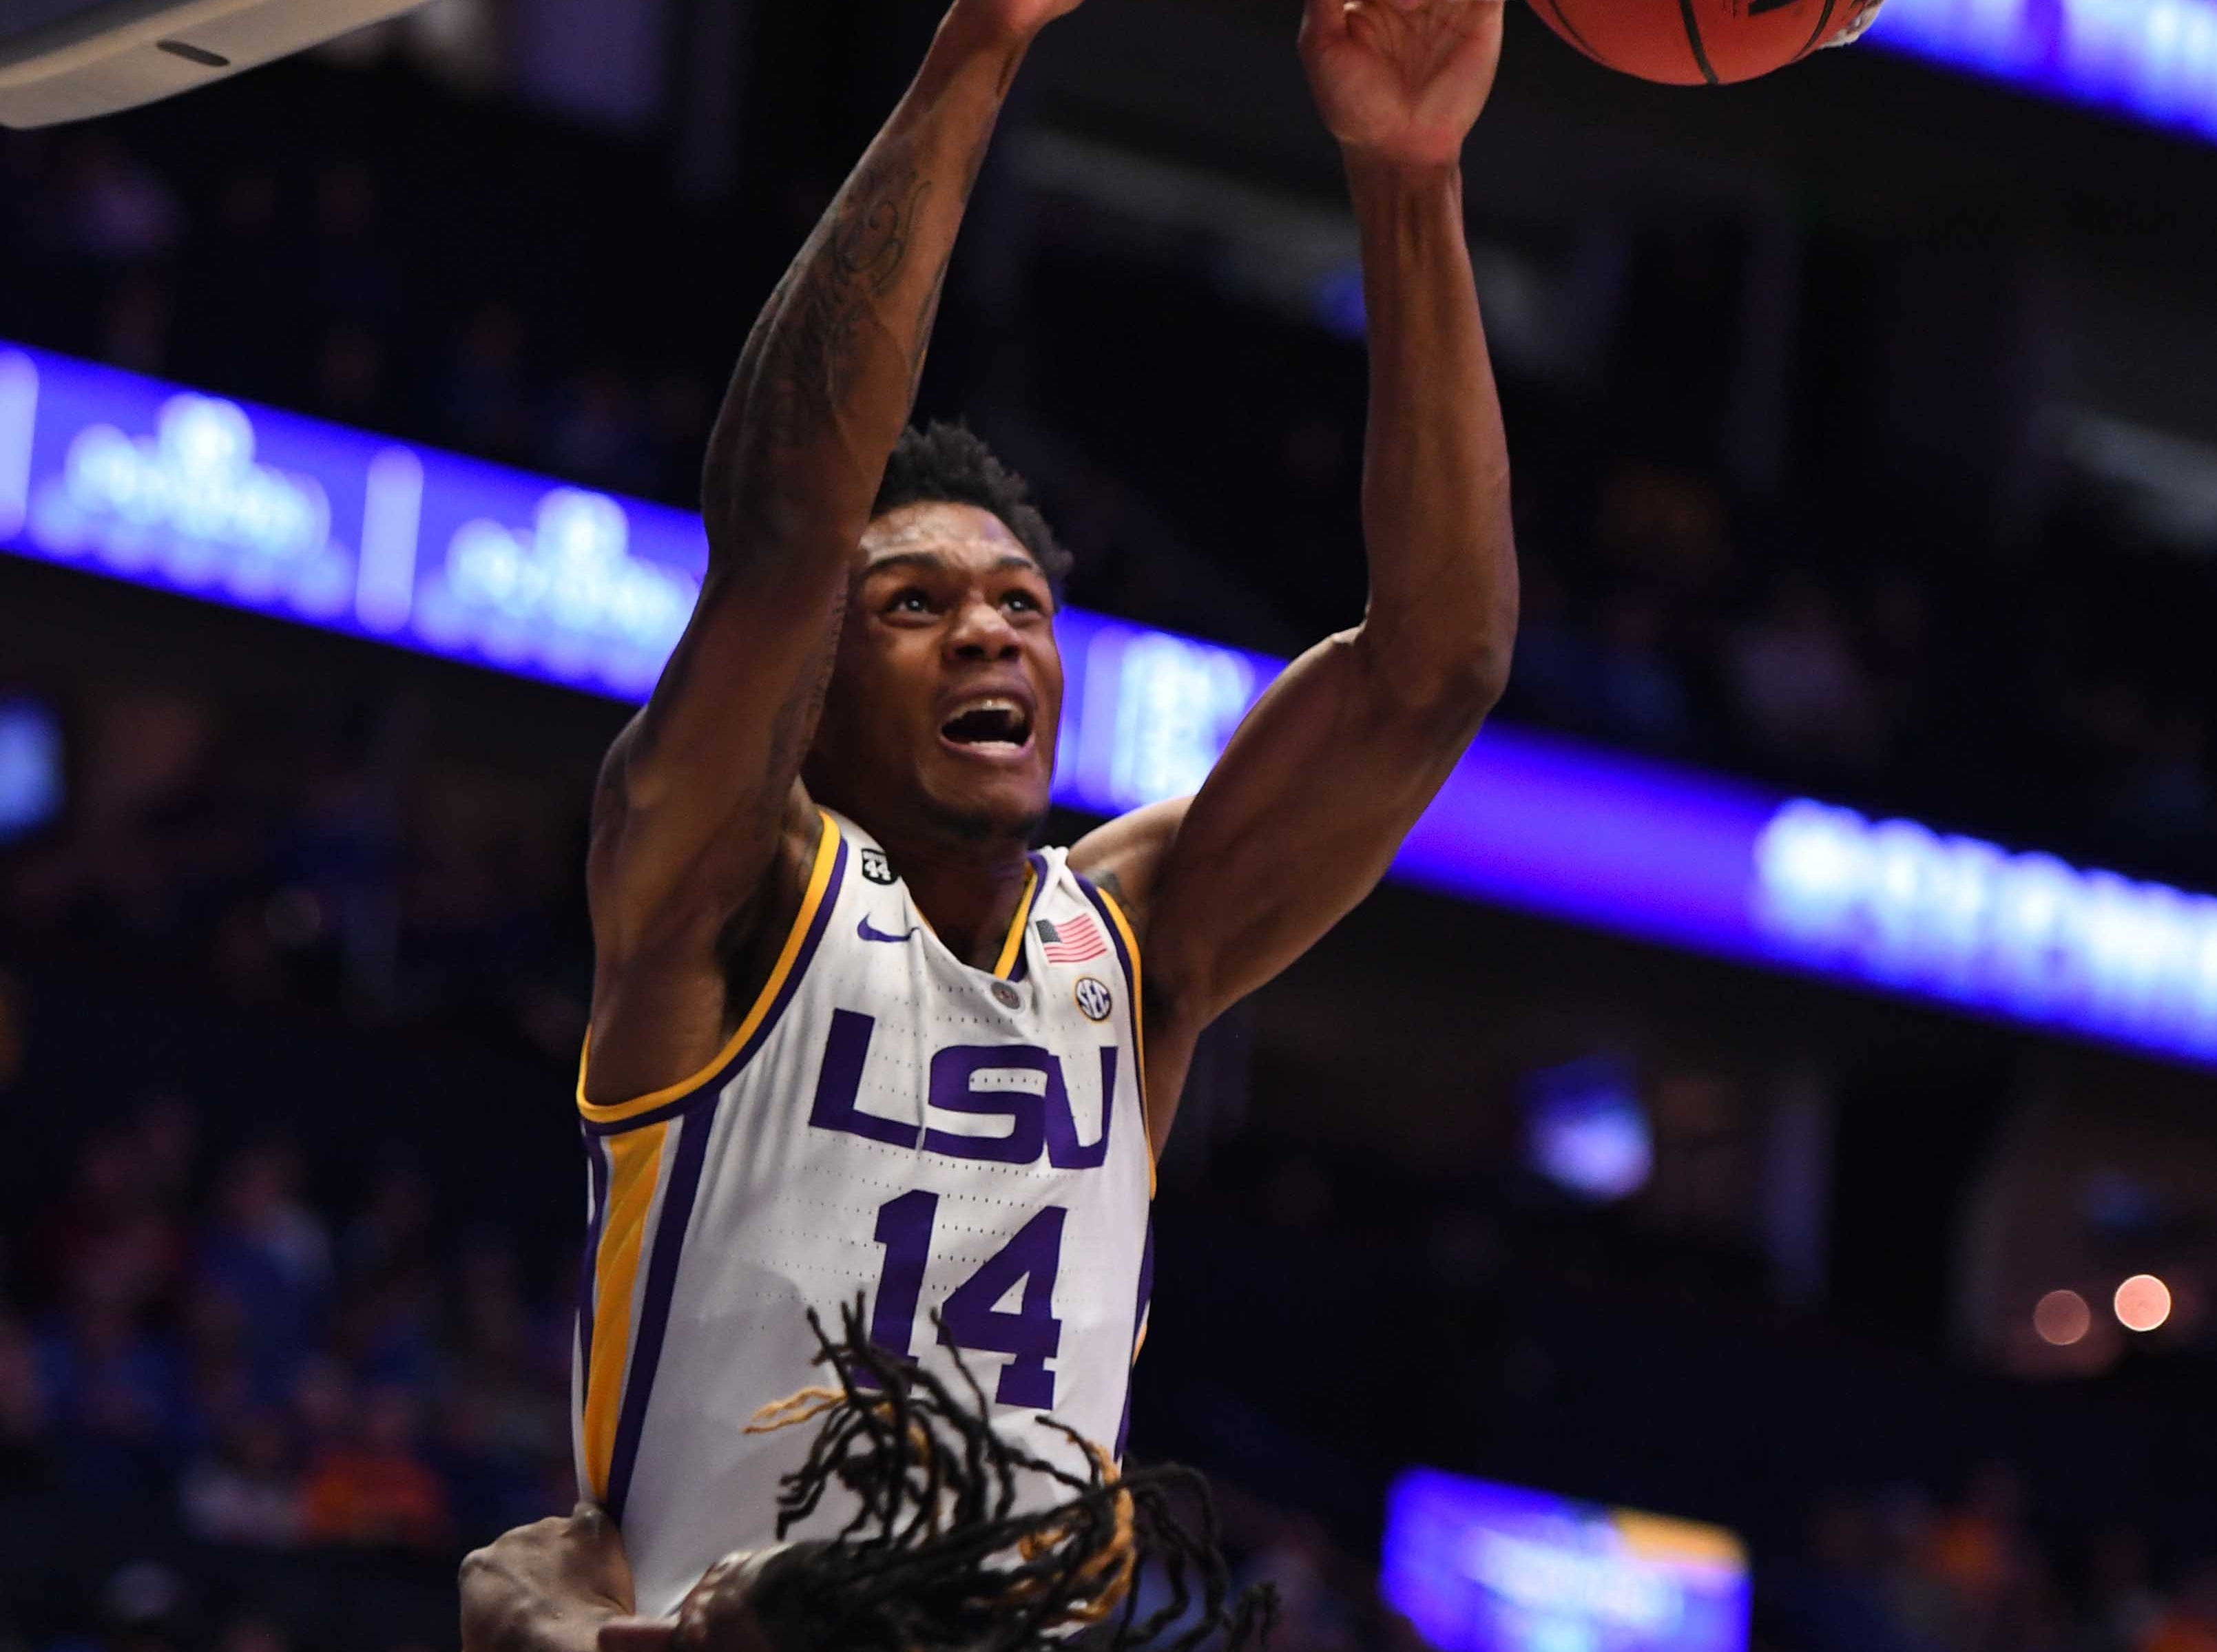 Mar 15, 2019; Nashville, TN, USA; LSU Tigers guard Marlon Taylor (14) dunks the ball against the Florida Gators during the first half of the SEC conference tournament at Bridgestone Arena. Mandatory Credit: Christopher Hanewinckel-USA TODAY Sports